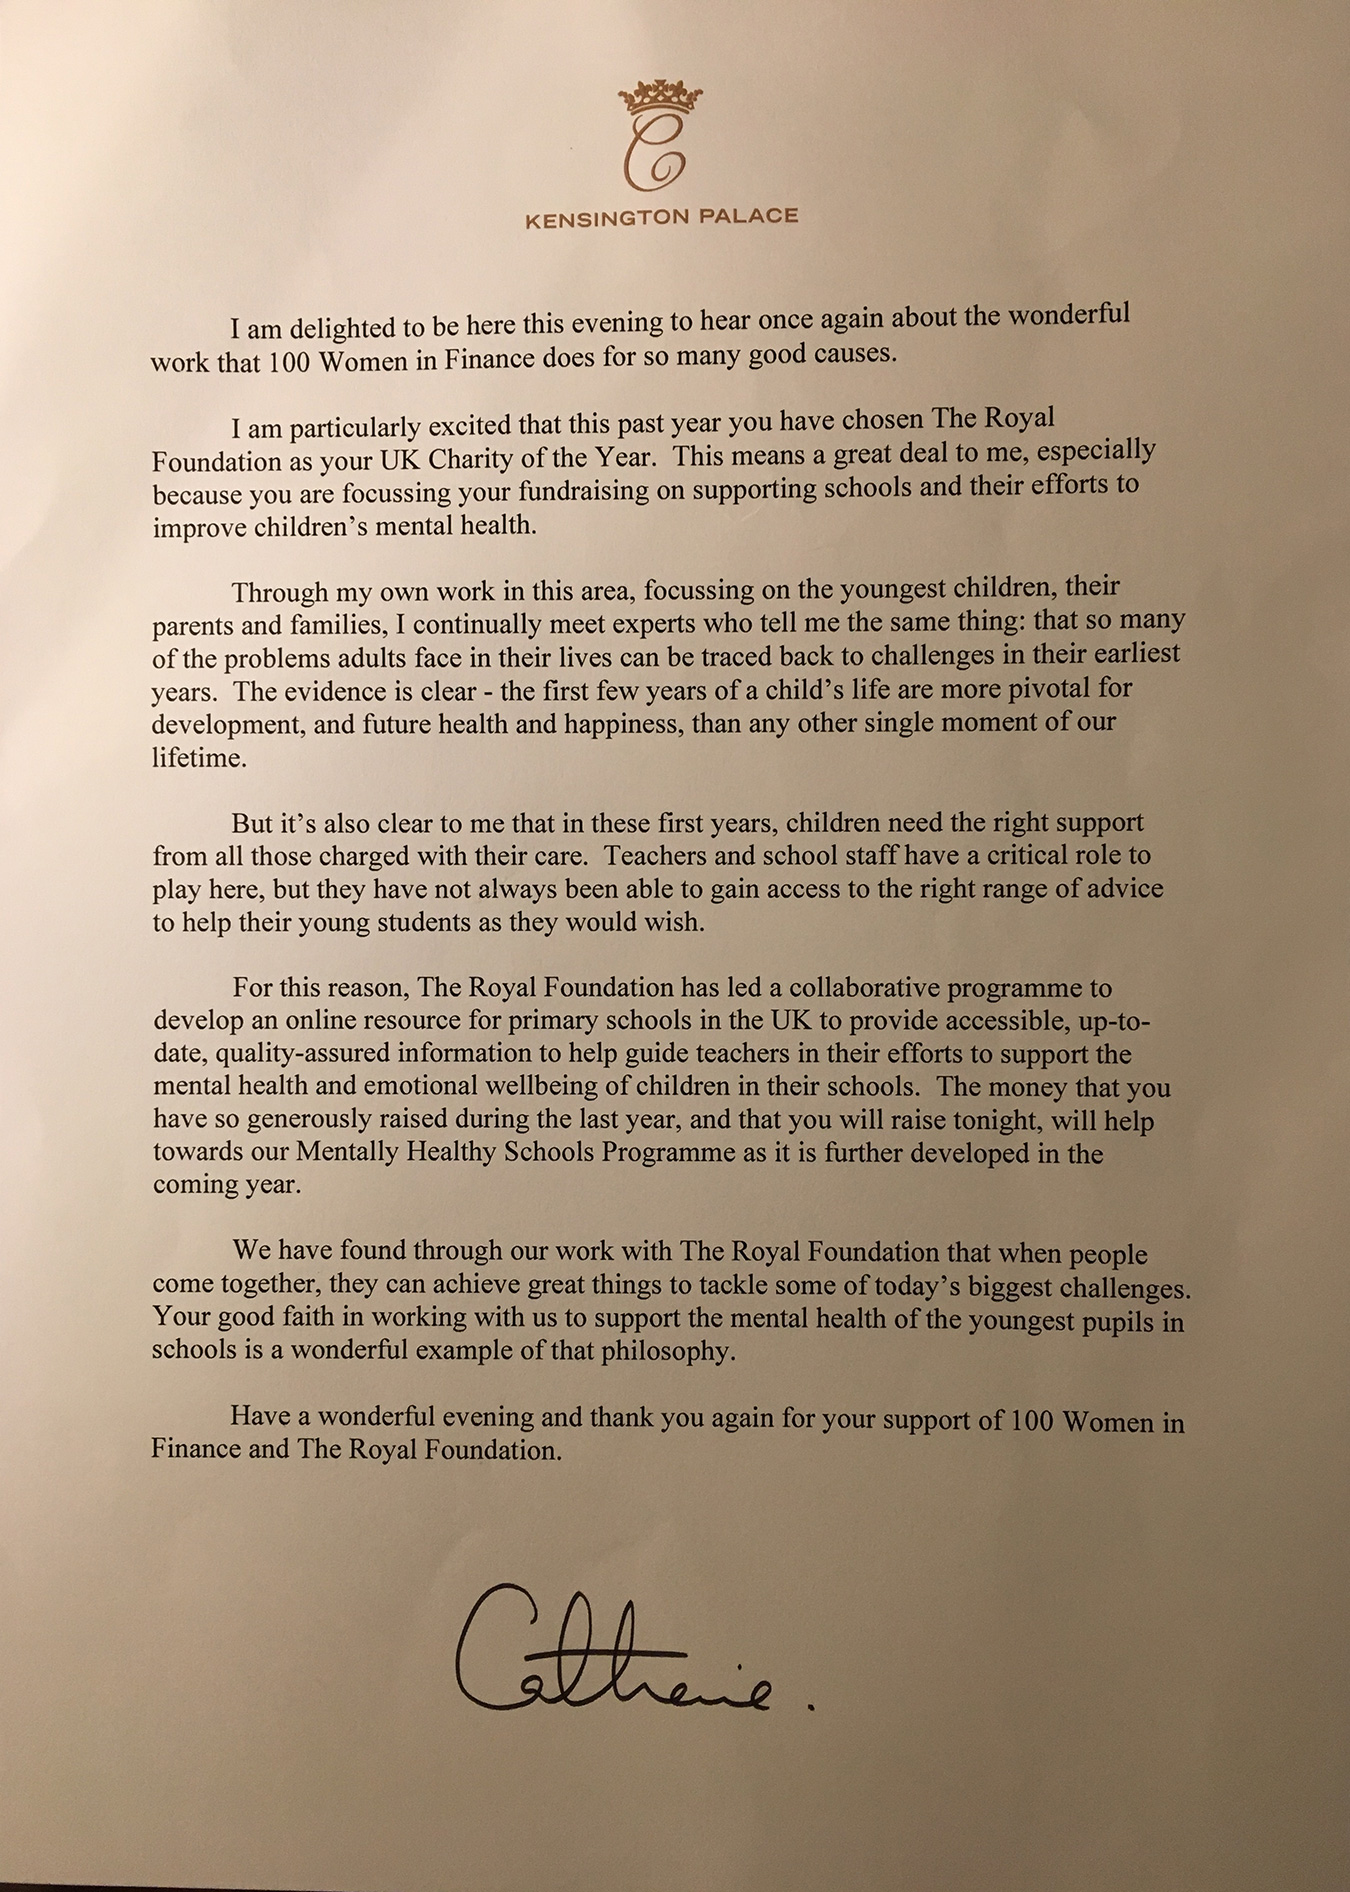 Letter from Duchess of Cambridge